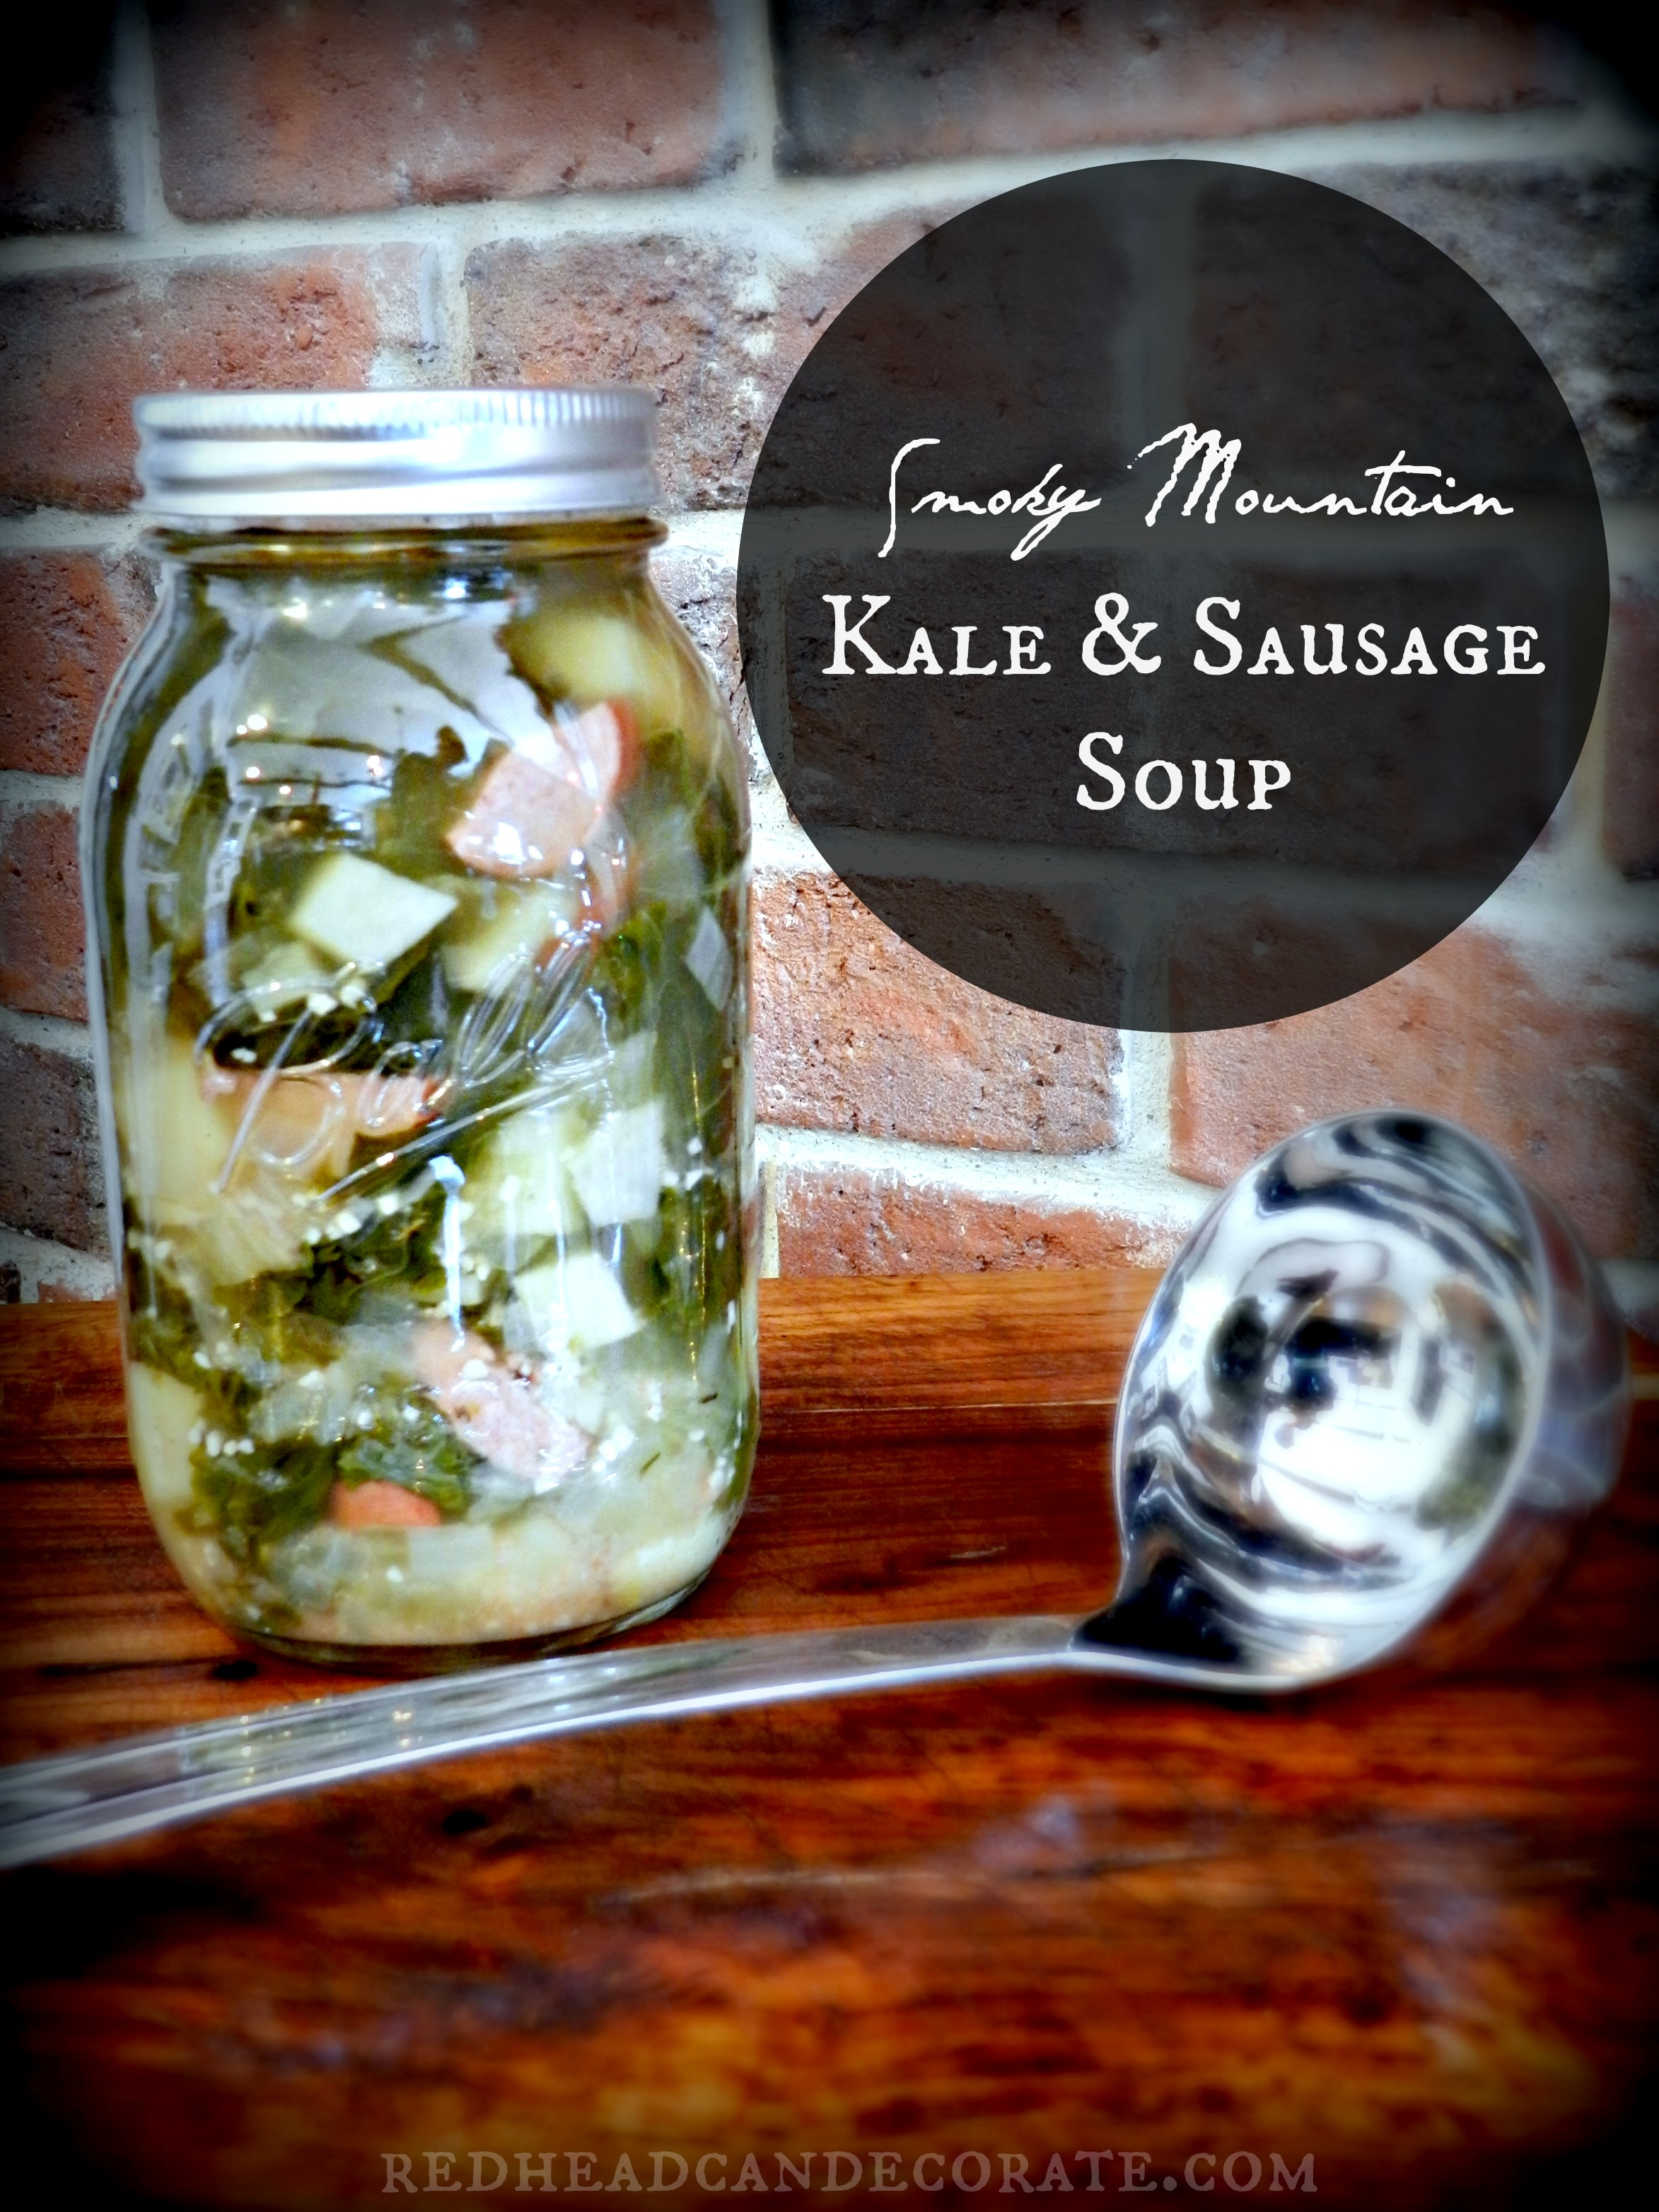 Smokey Mountain Kale & Sausage Soup